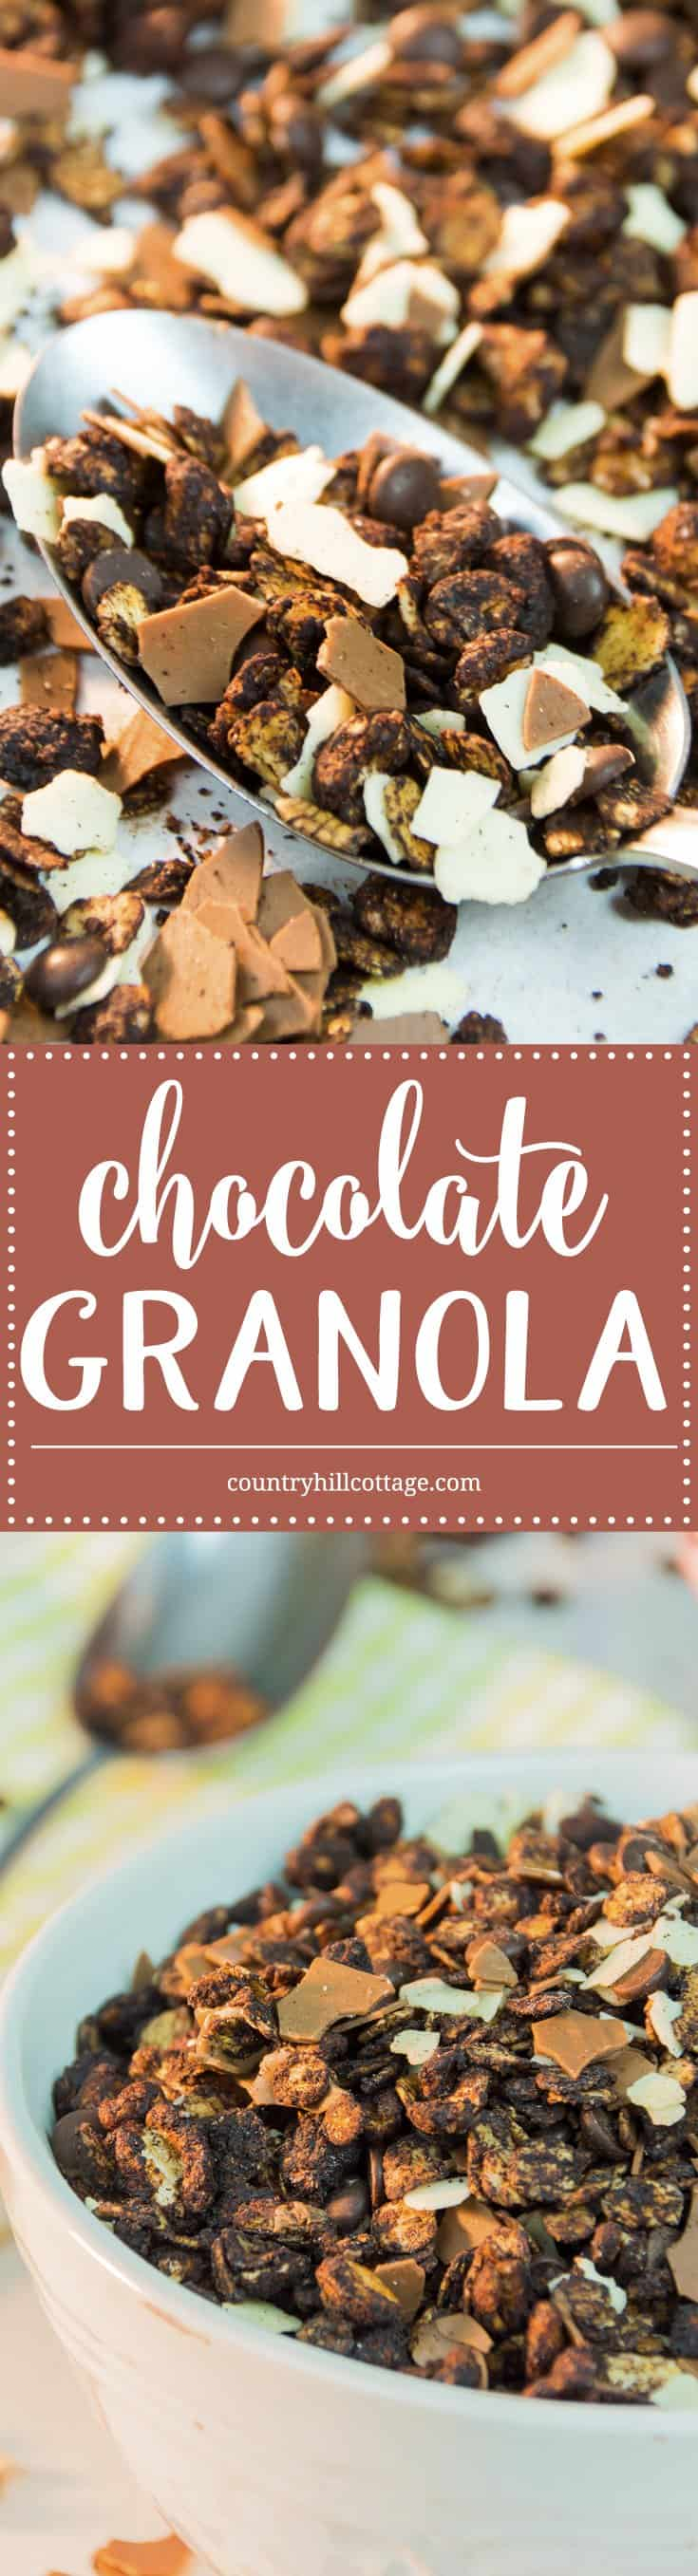 Our triple chocolate granola is so good that eating it isn't just limit to mornings and breakfast. With cocoa, white and milk chocolate flakes, and dark chocolate chips it's the ultimate chocolate granola. │ countryhillcottage.com